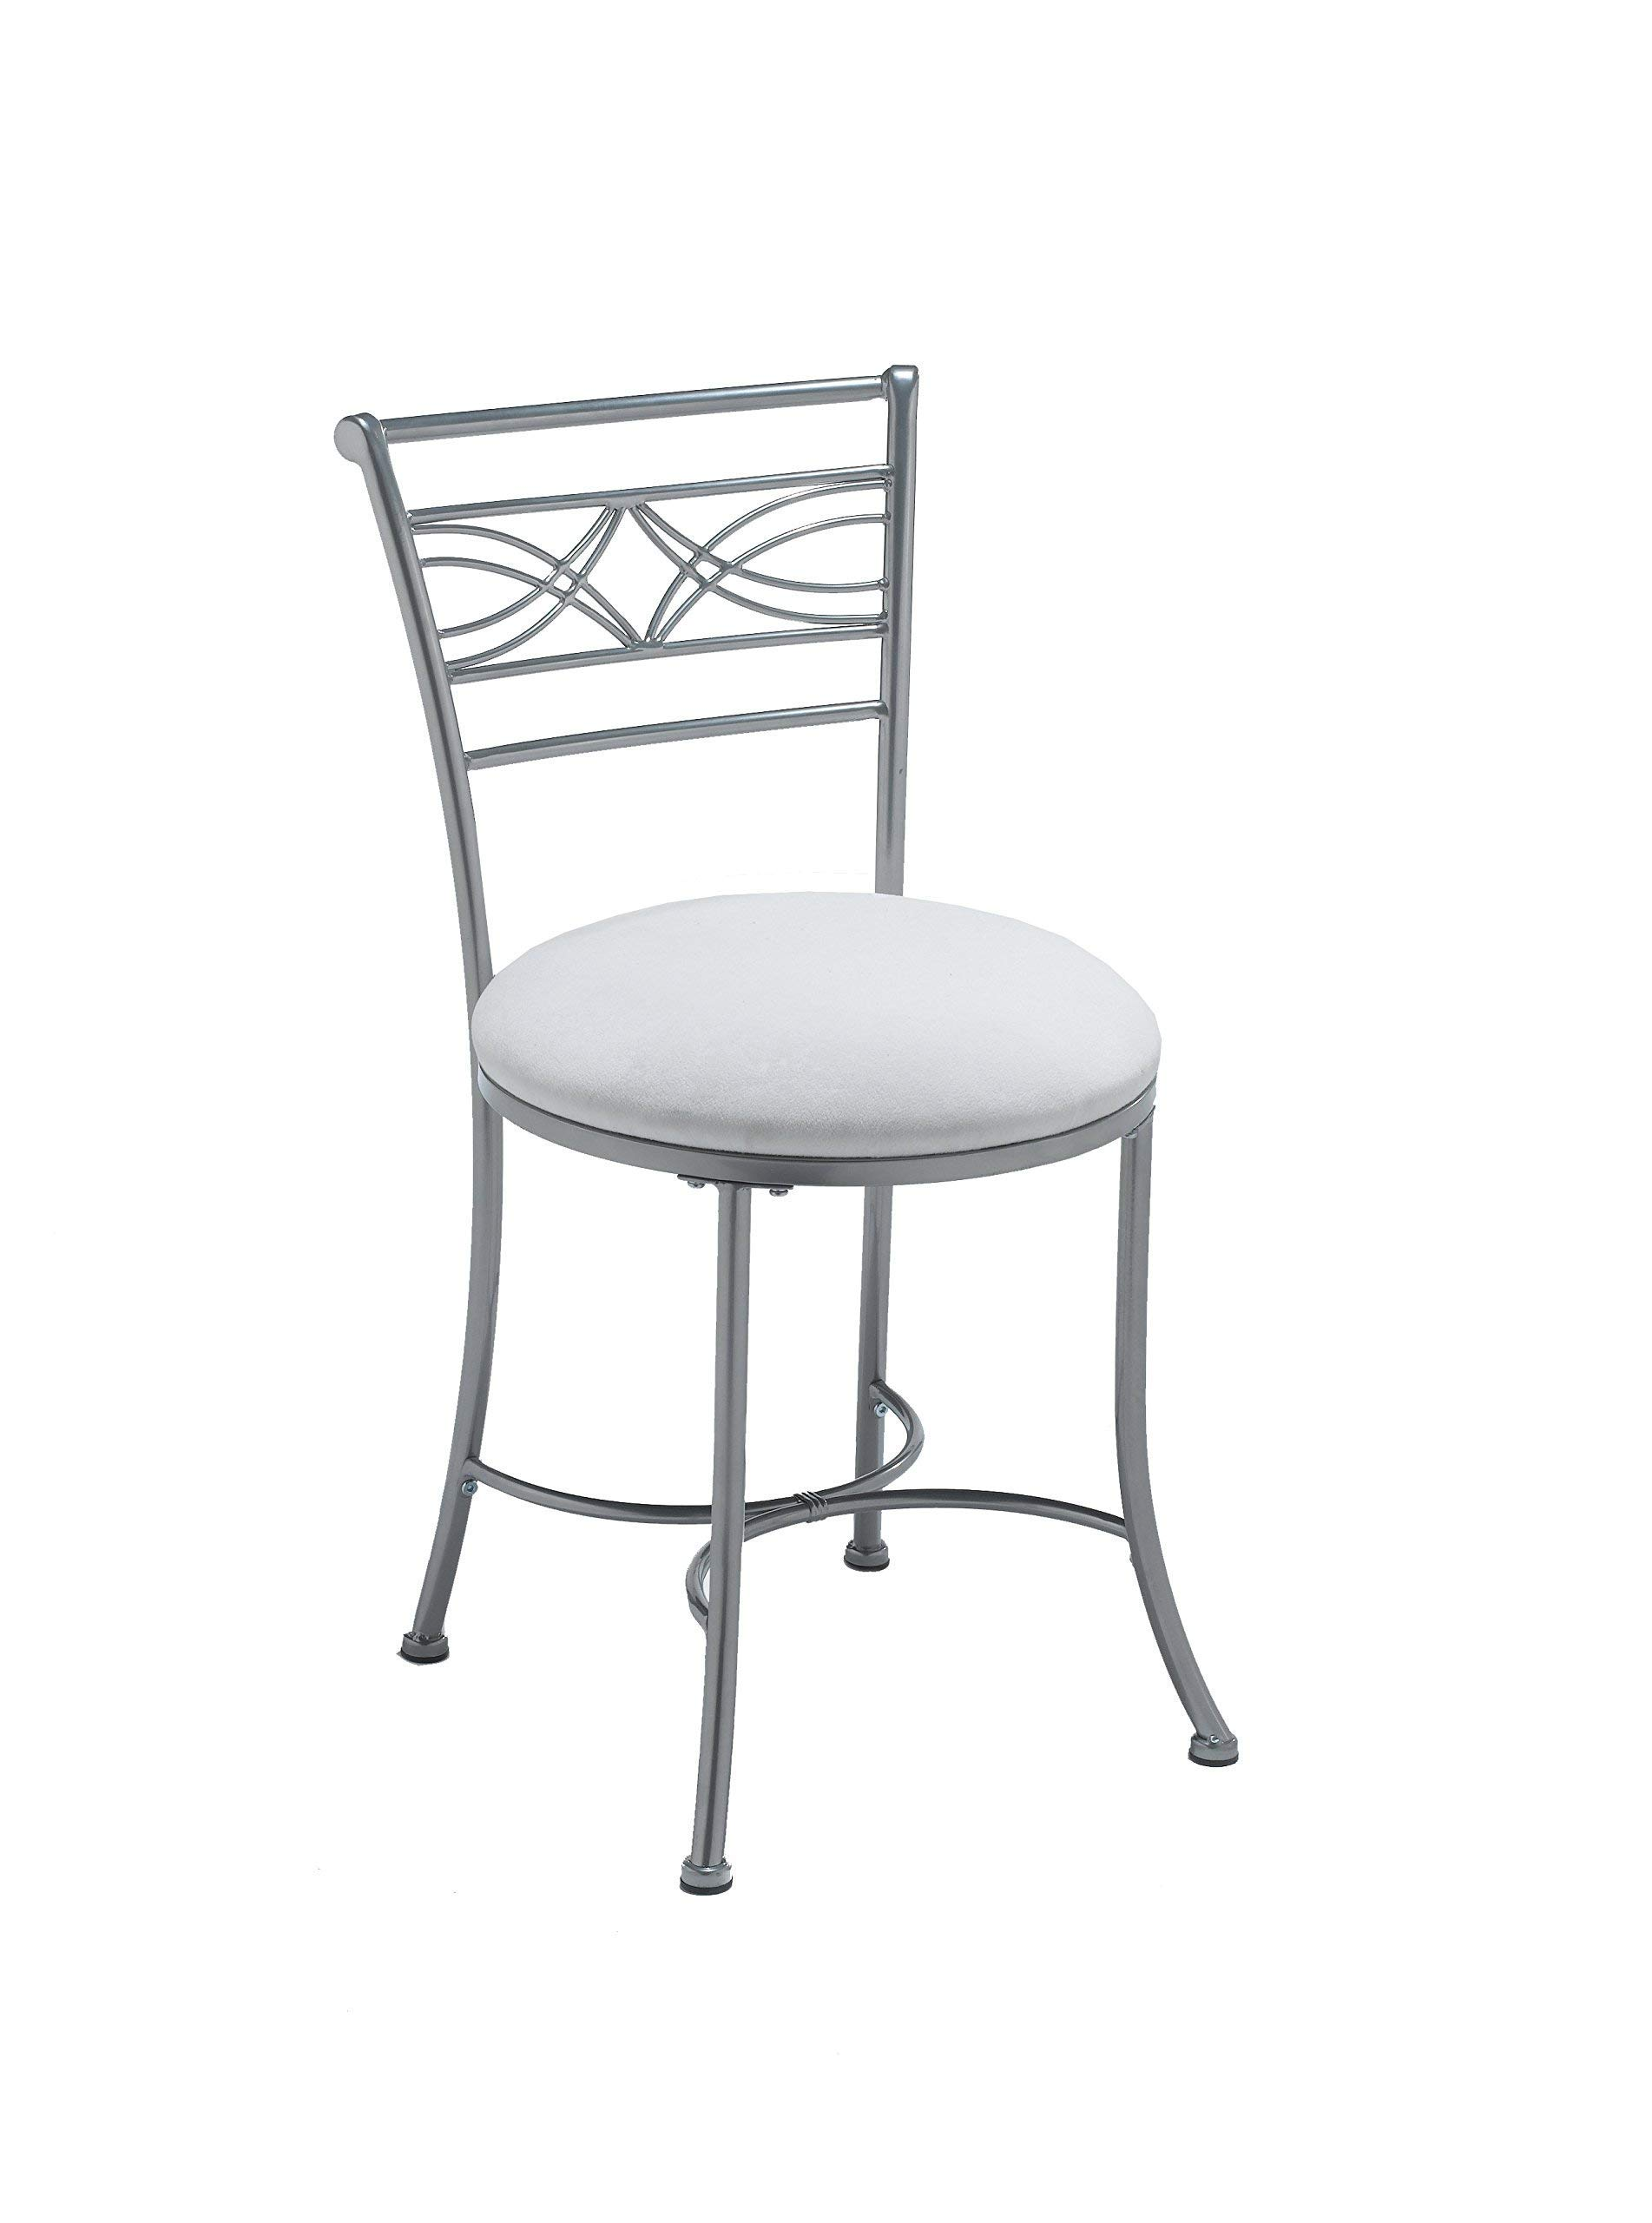 Hillsdale Furniture 50941A Dutton Vanity Stool, Chrome (Renewed) by Hillsdale Furniture